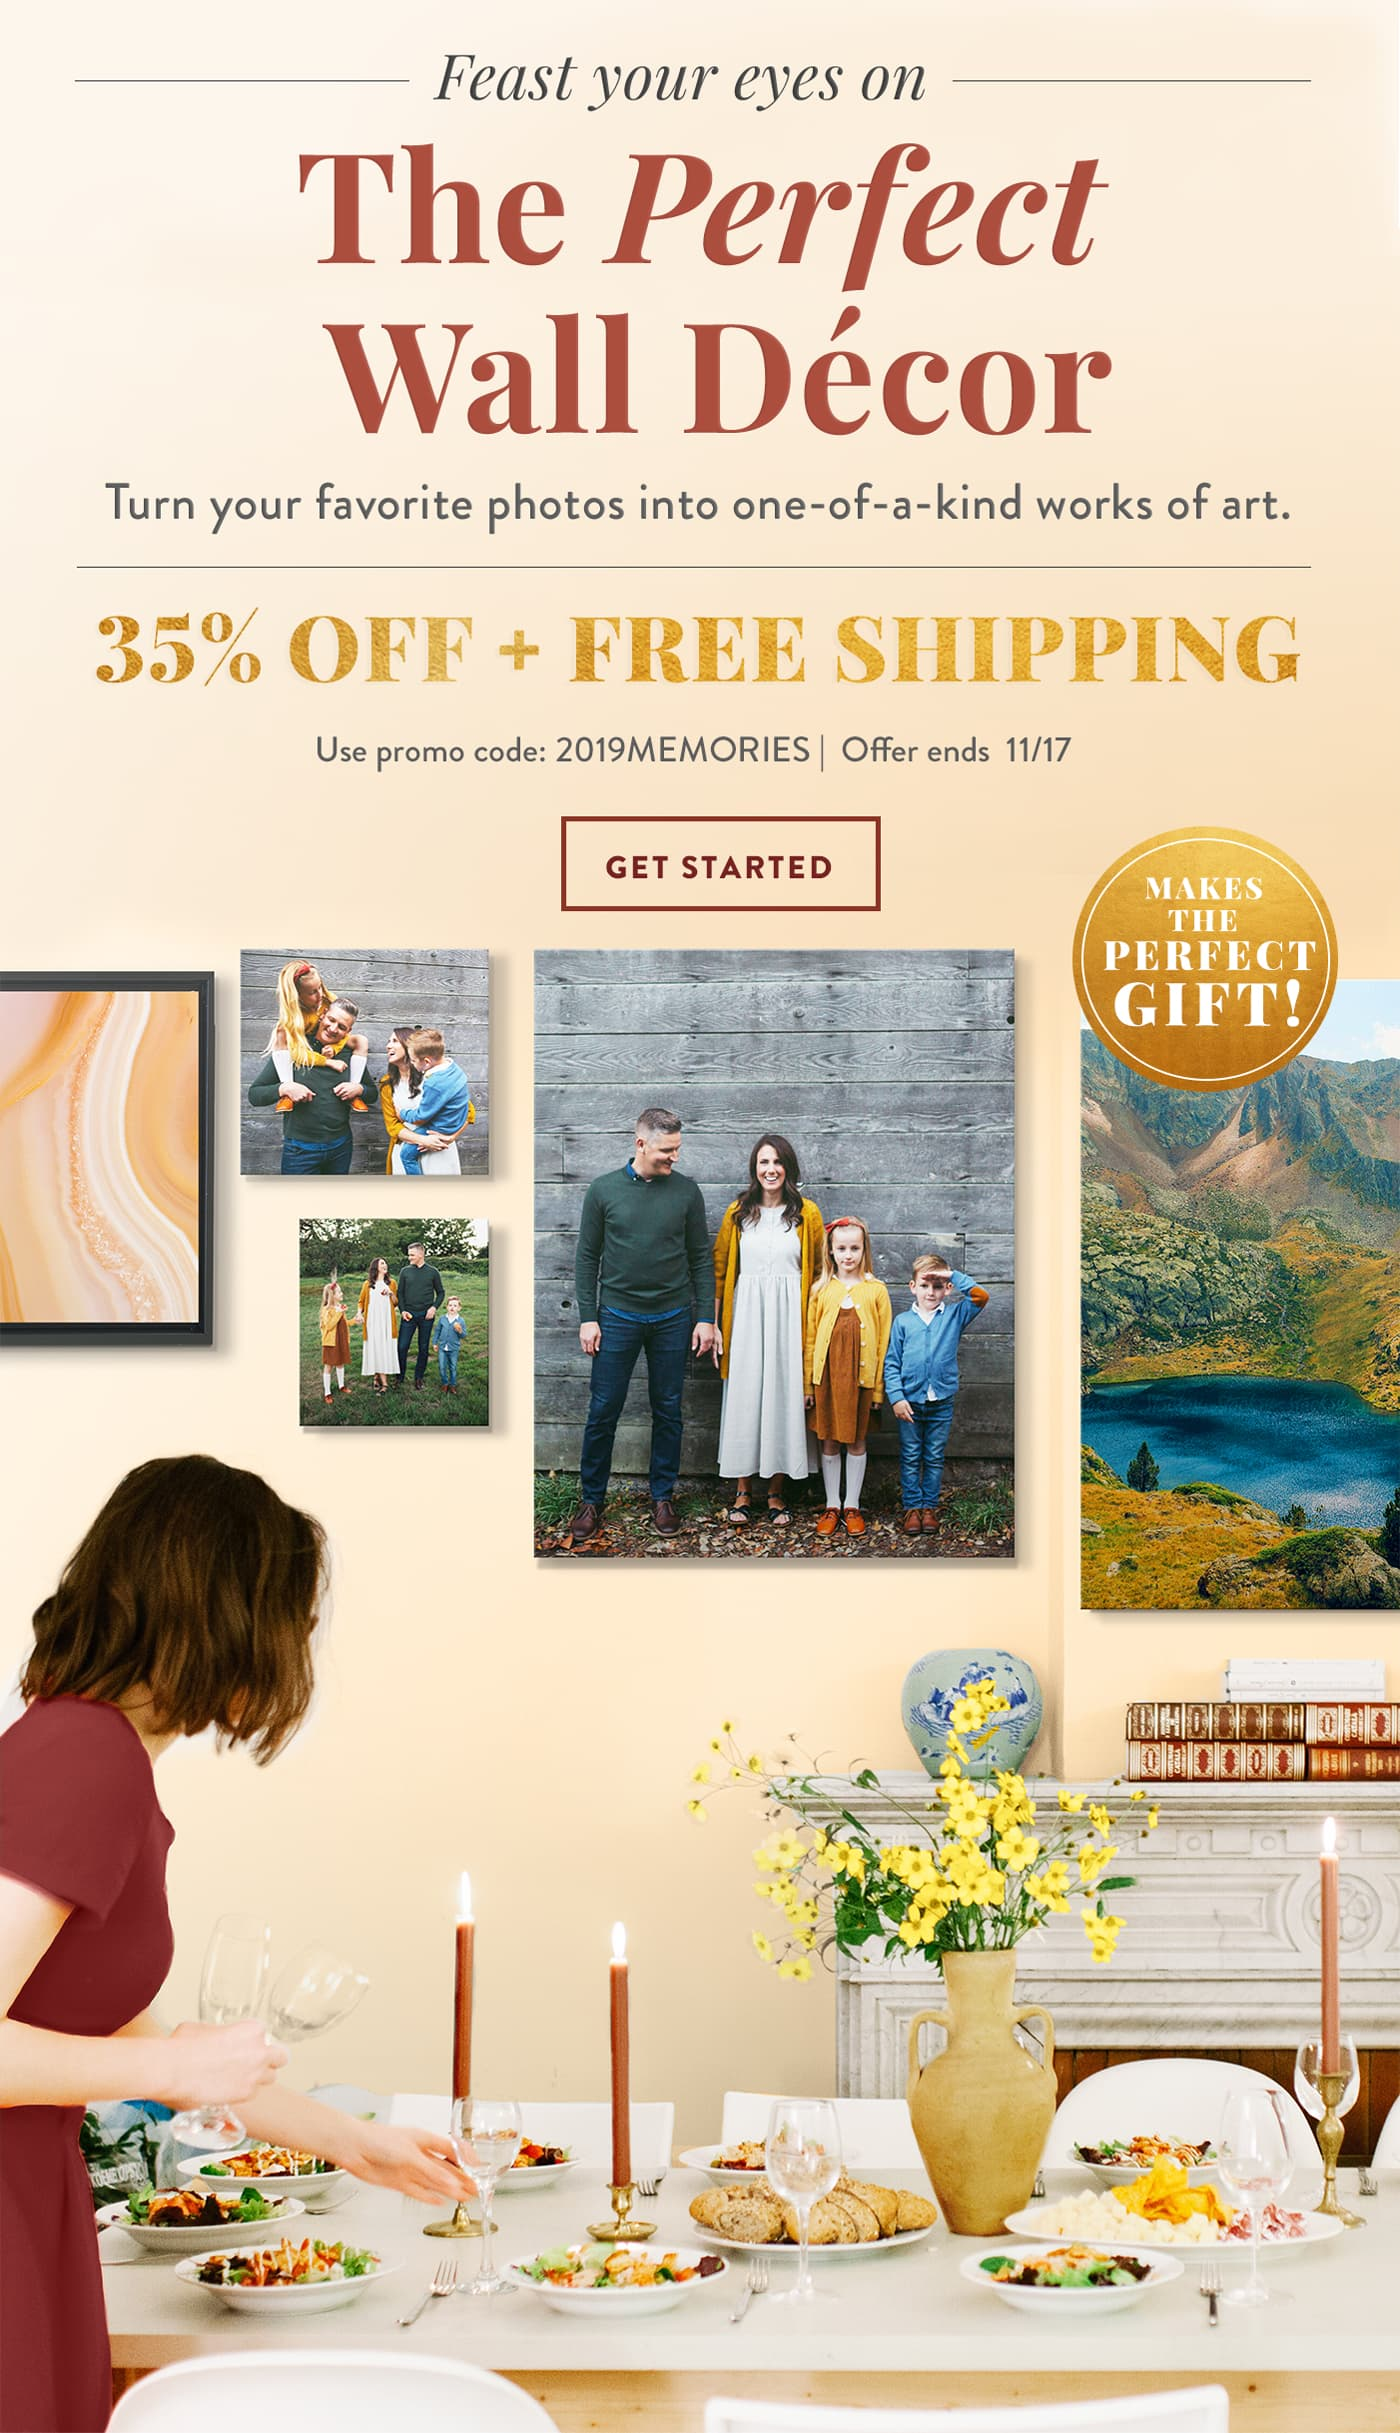 Feast your eyes on  The Perfect Wall Decor   Turn your favorite photos into one-of-a-kind works of art.   35% OFF + FREE SHIPPING   Use promo code: 2019MEMORIES   Offer ends 11/17   GET STARTED